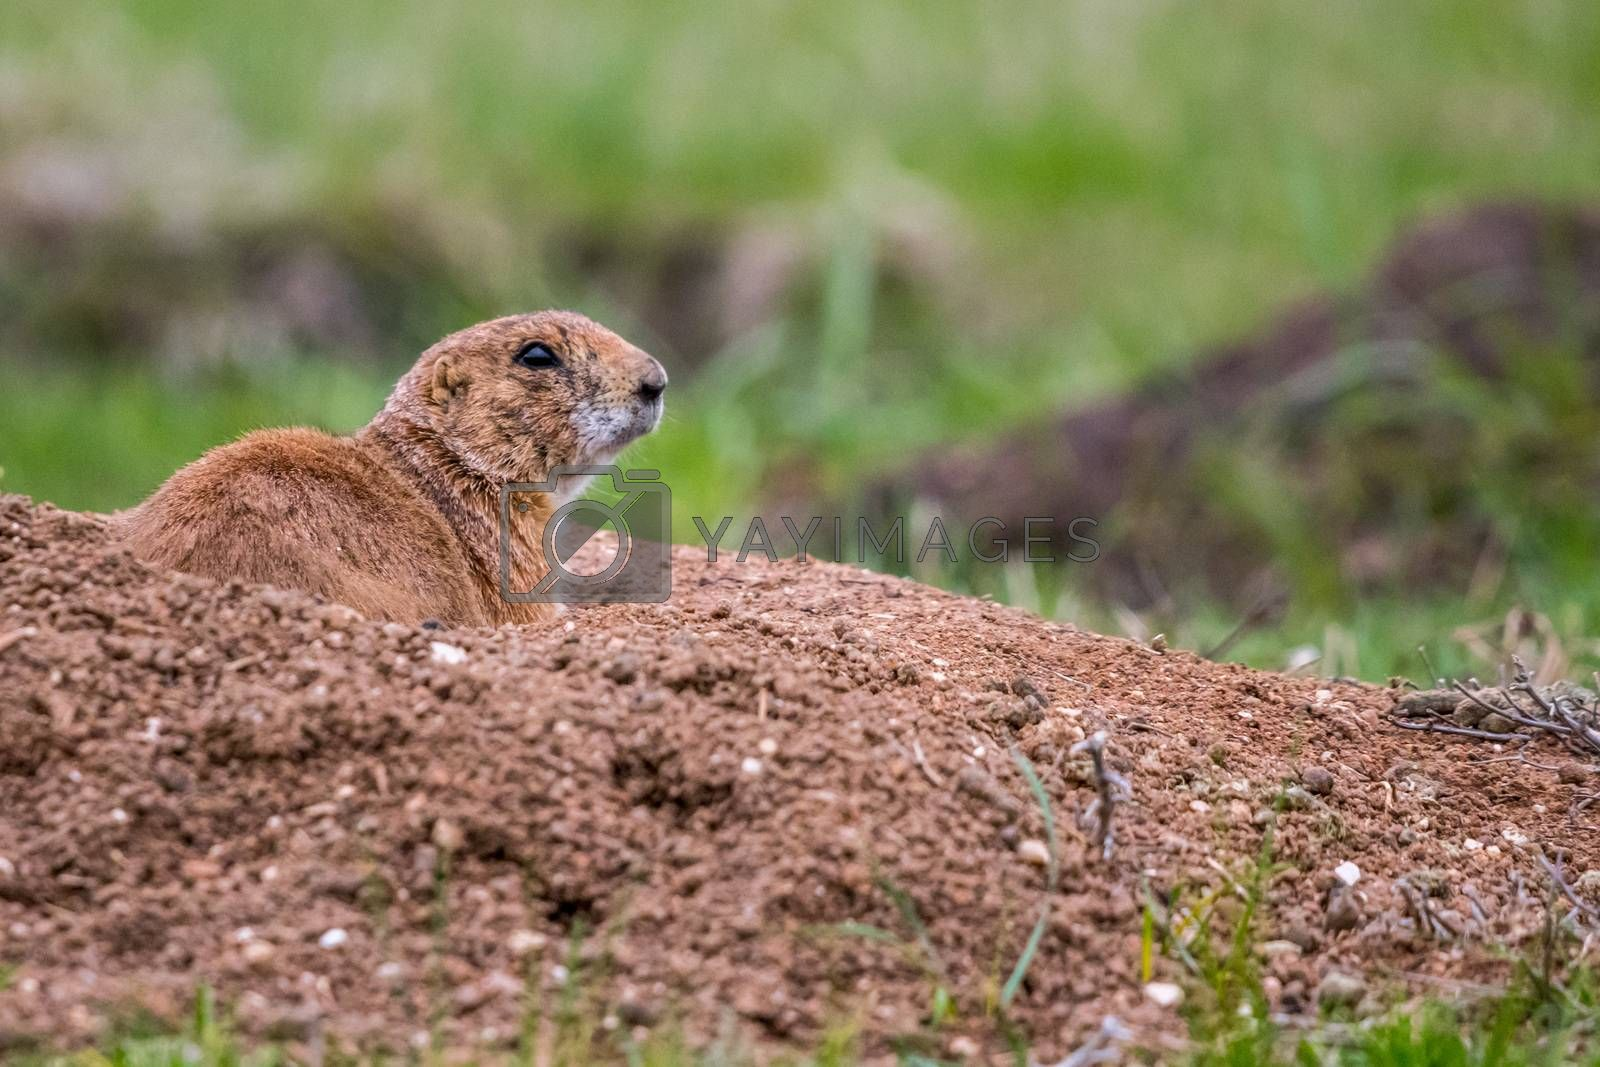 Royalty free image of Prairie Dogs in Custer State Park, South Dakota by cherialguire